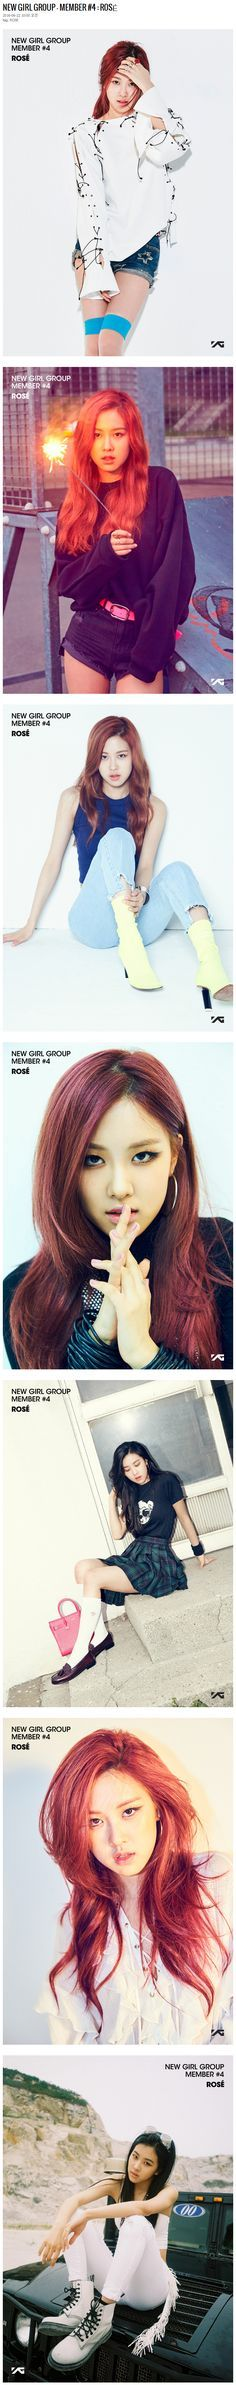 YG LIFE | NEW GIRL GROUP – MEMBER #4 : ROSÉ http://www.yg-life.com/archives/75844 / https://www.pinterest.com/pin/214202526006133718/ #BLACKPINK #블랙핑크 #ROSÉ